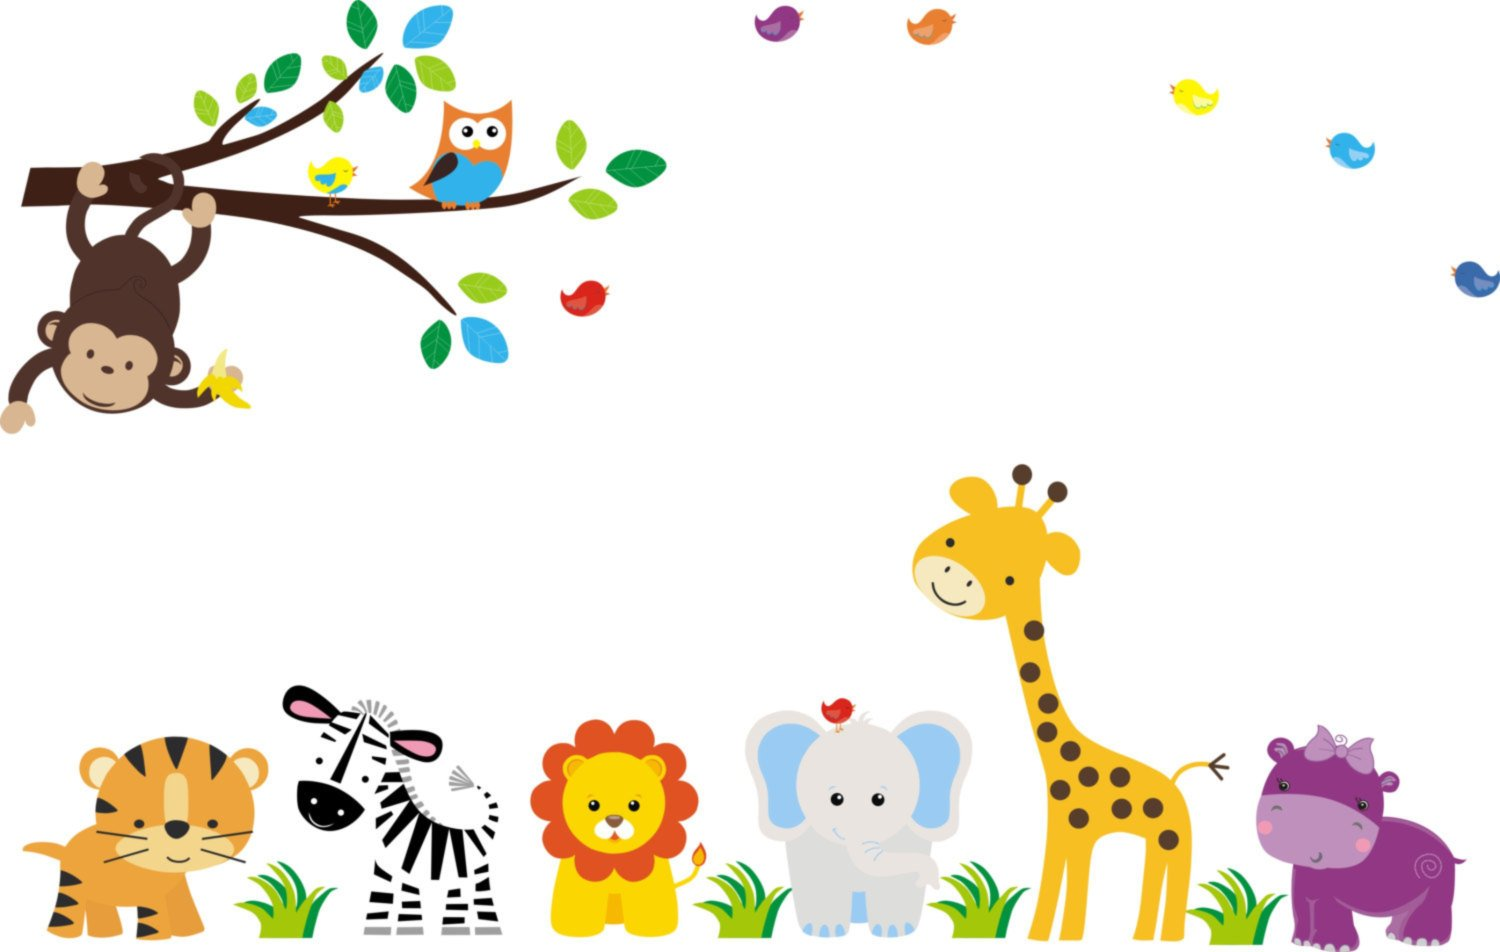 Baby Nursery Wall Decals Safari Jungle Children's Themed 83'' X 156'' (Inches) Animals Wildlife: Repositionable Removable Reusable Wall Art: Better than vinyl wall decals: Superior Material